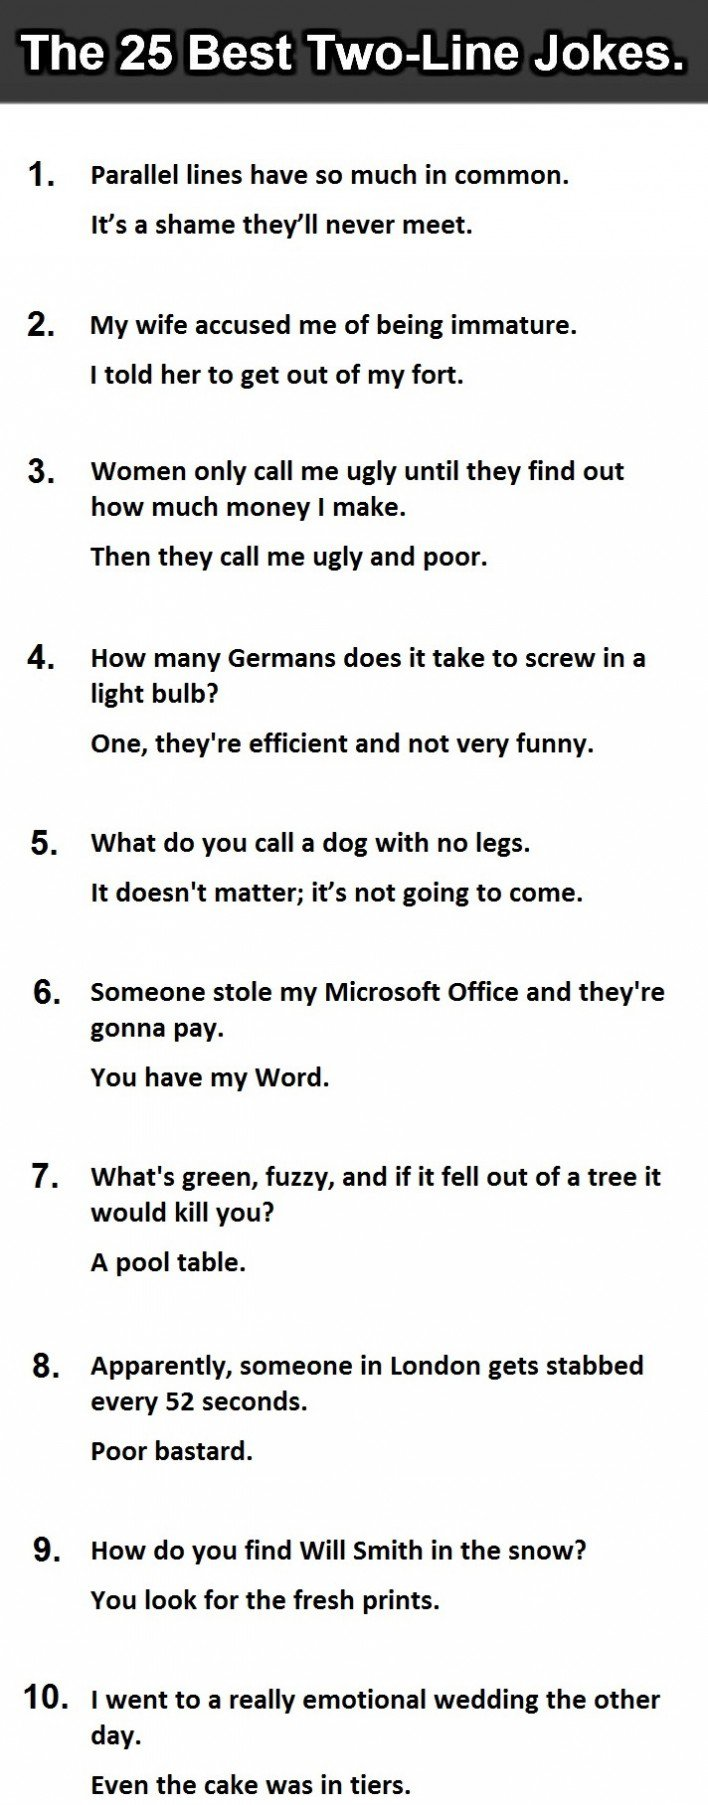 The 25 Best Two-Line Jokes Ever. #14 Is Priceless